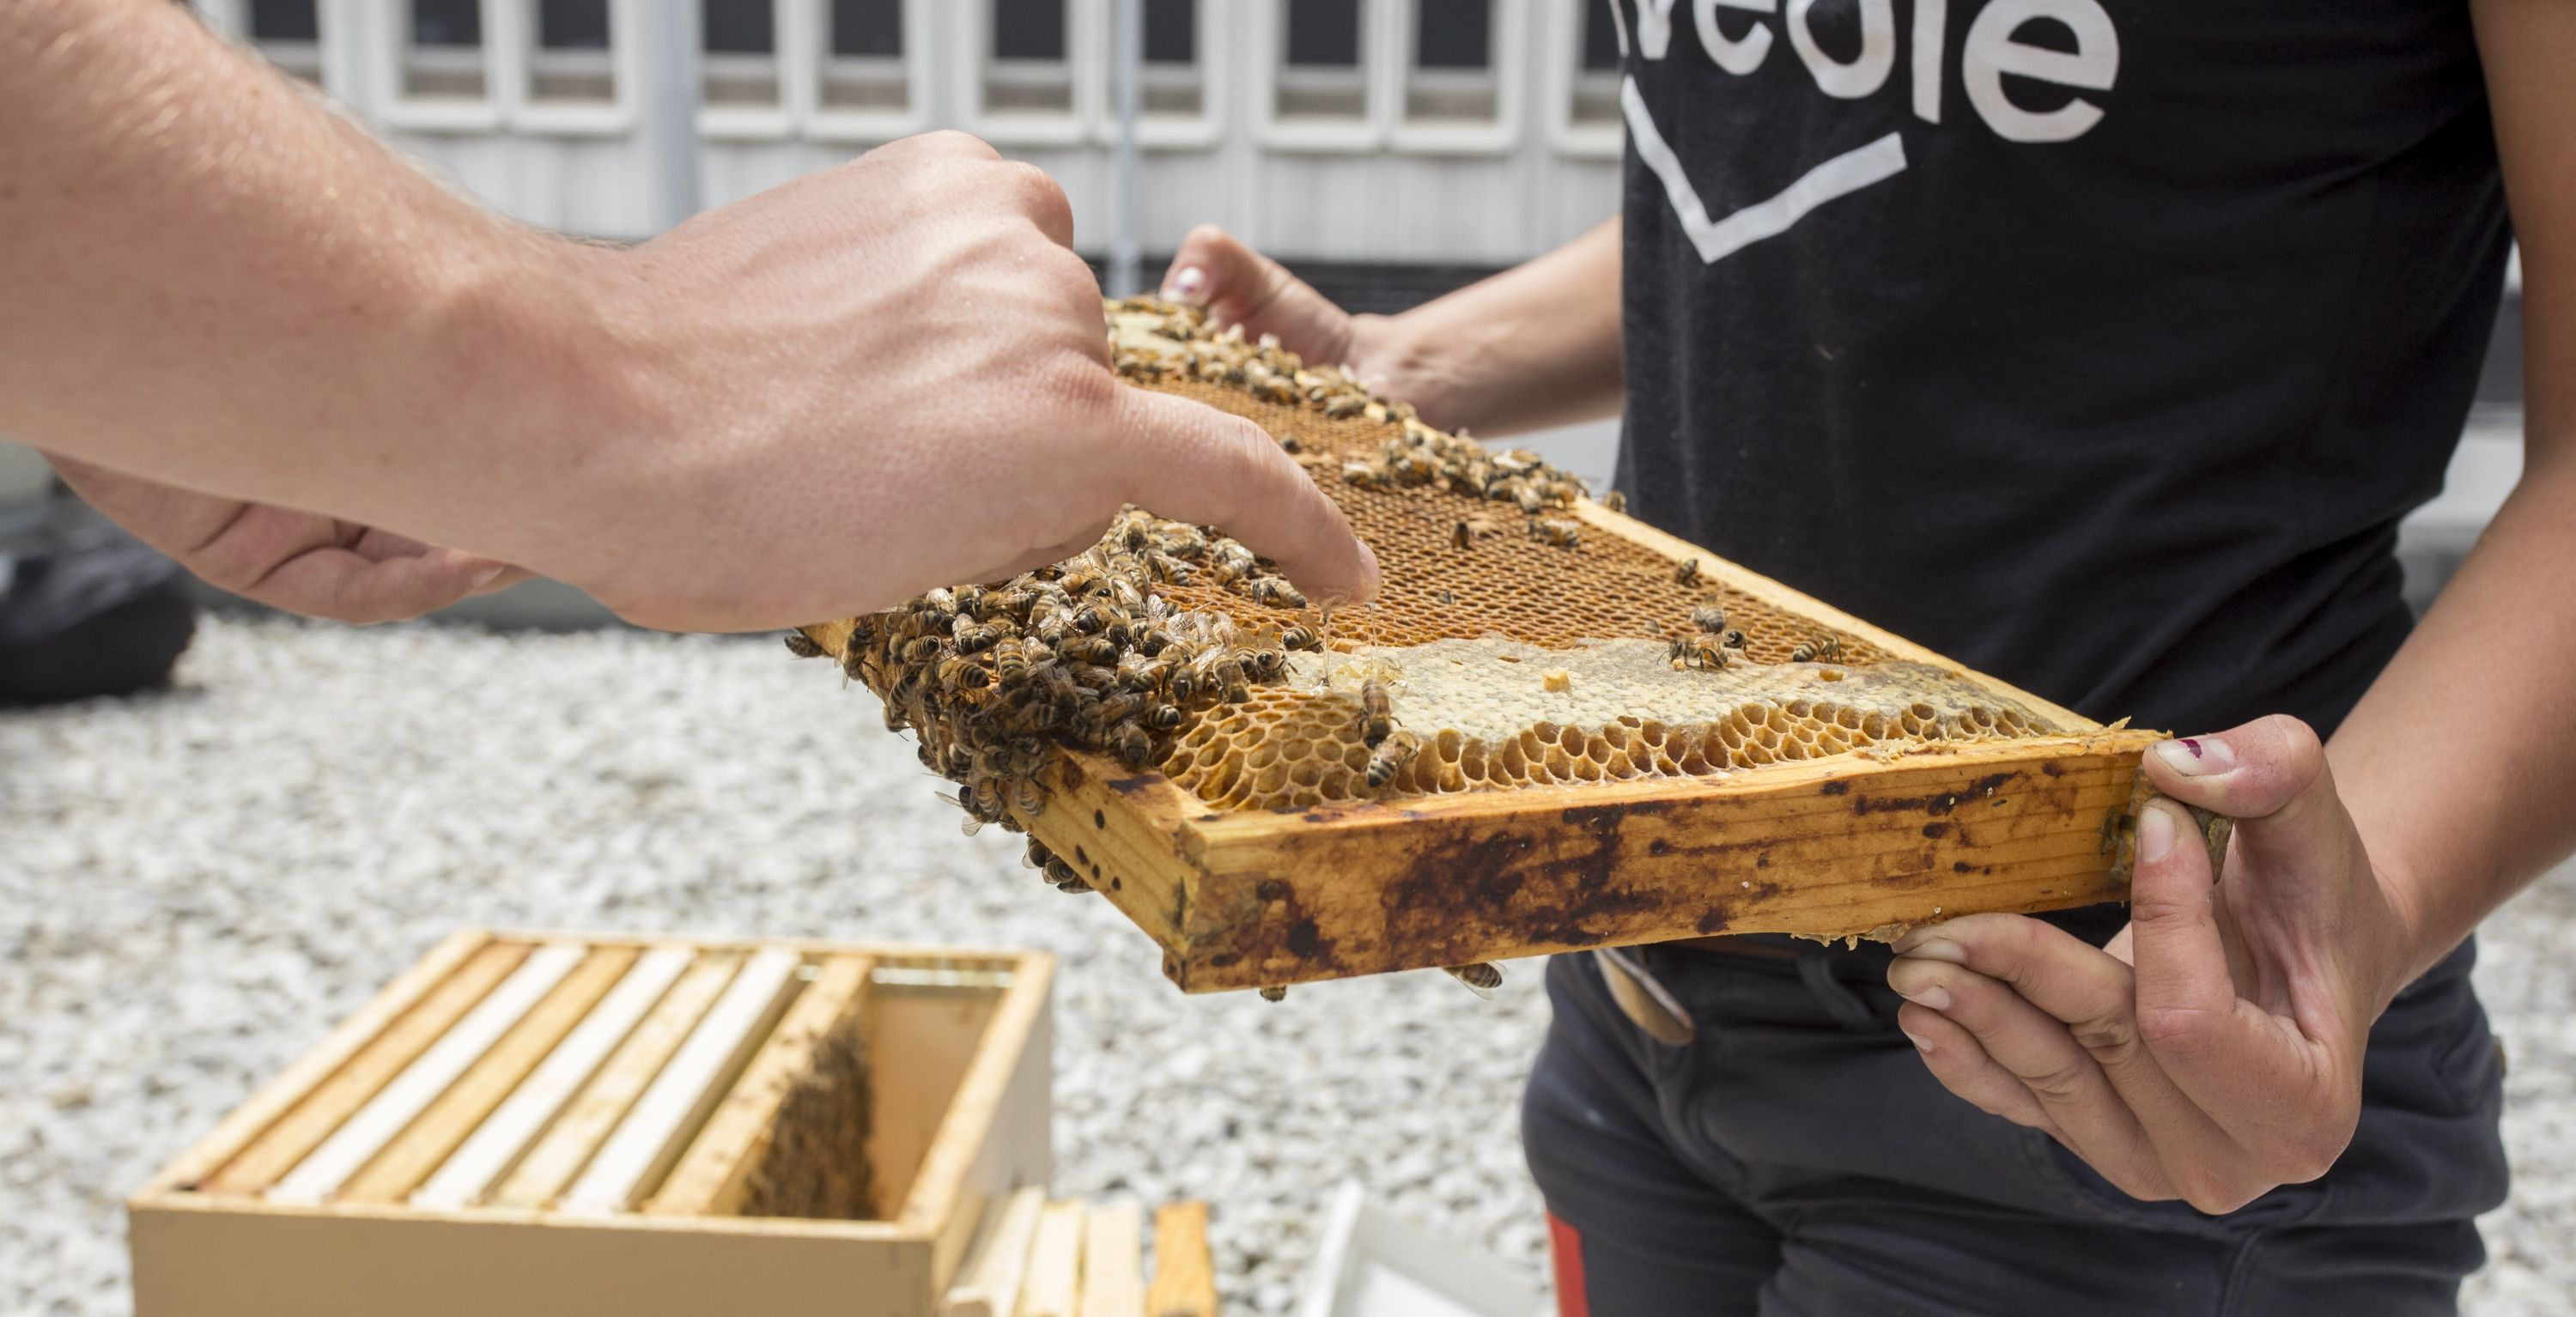 The Montreal Museum of Fine Arts welcomes two rooftop beehives